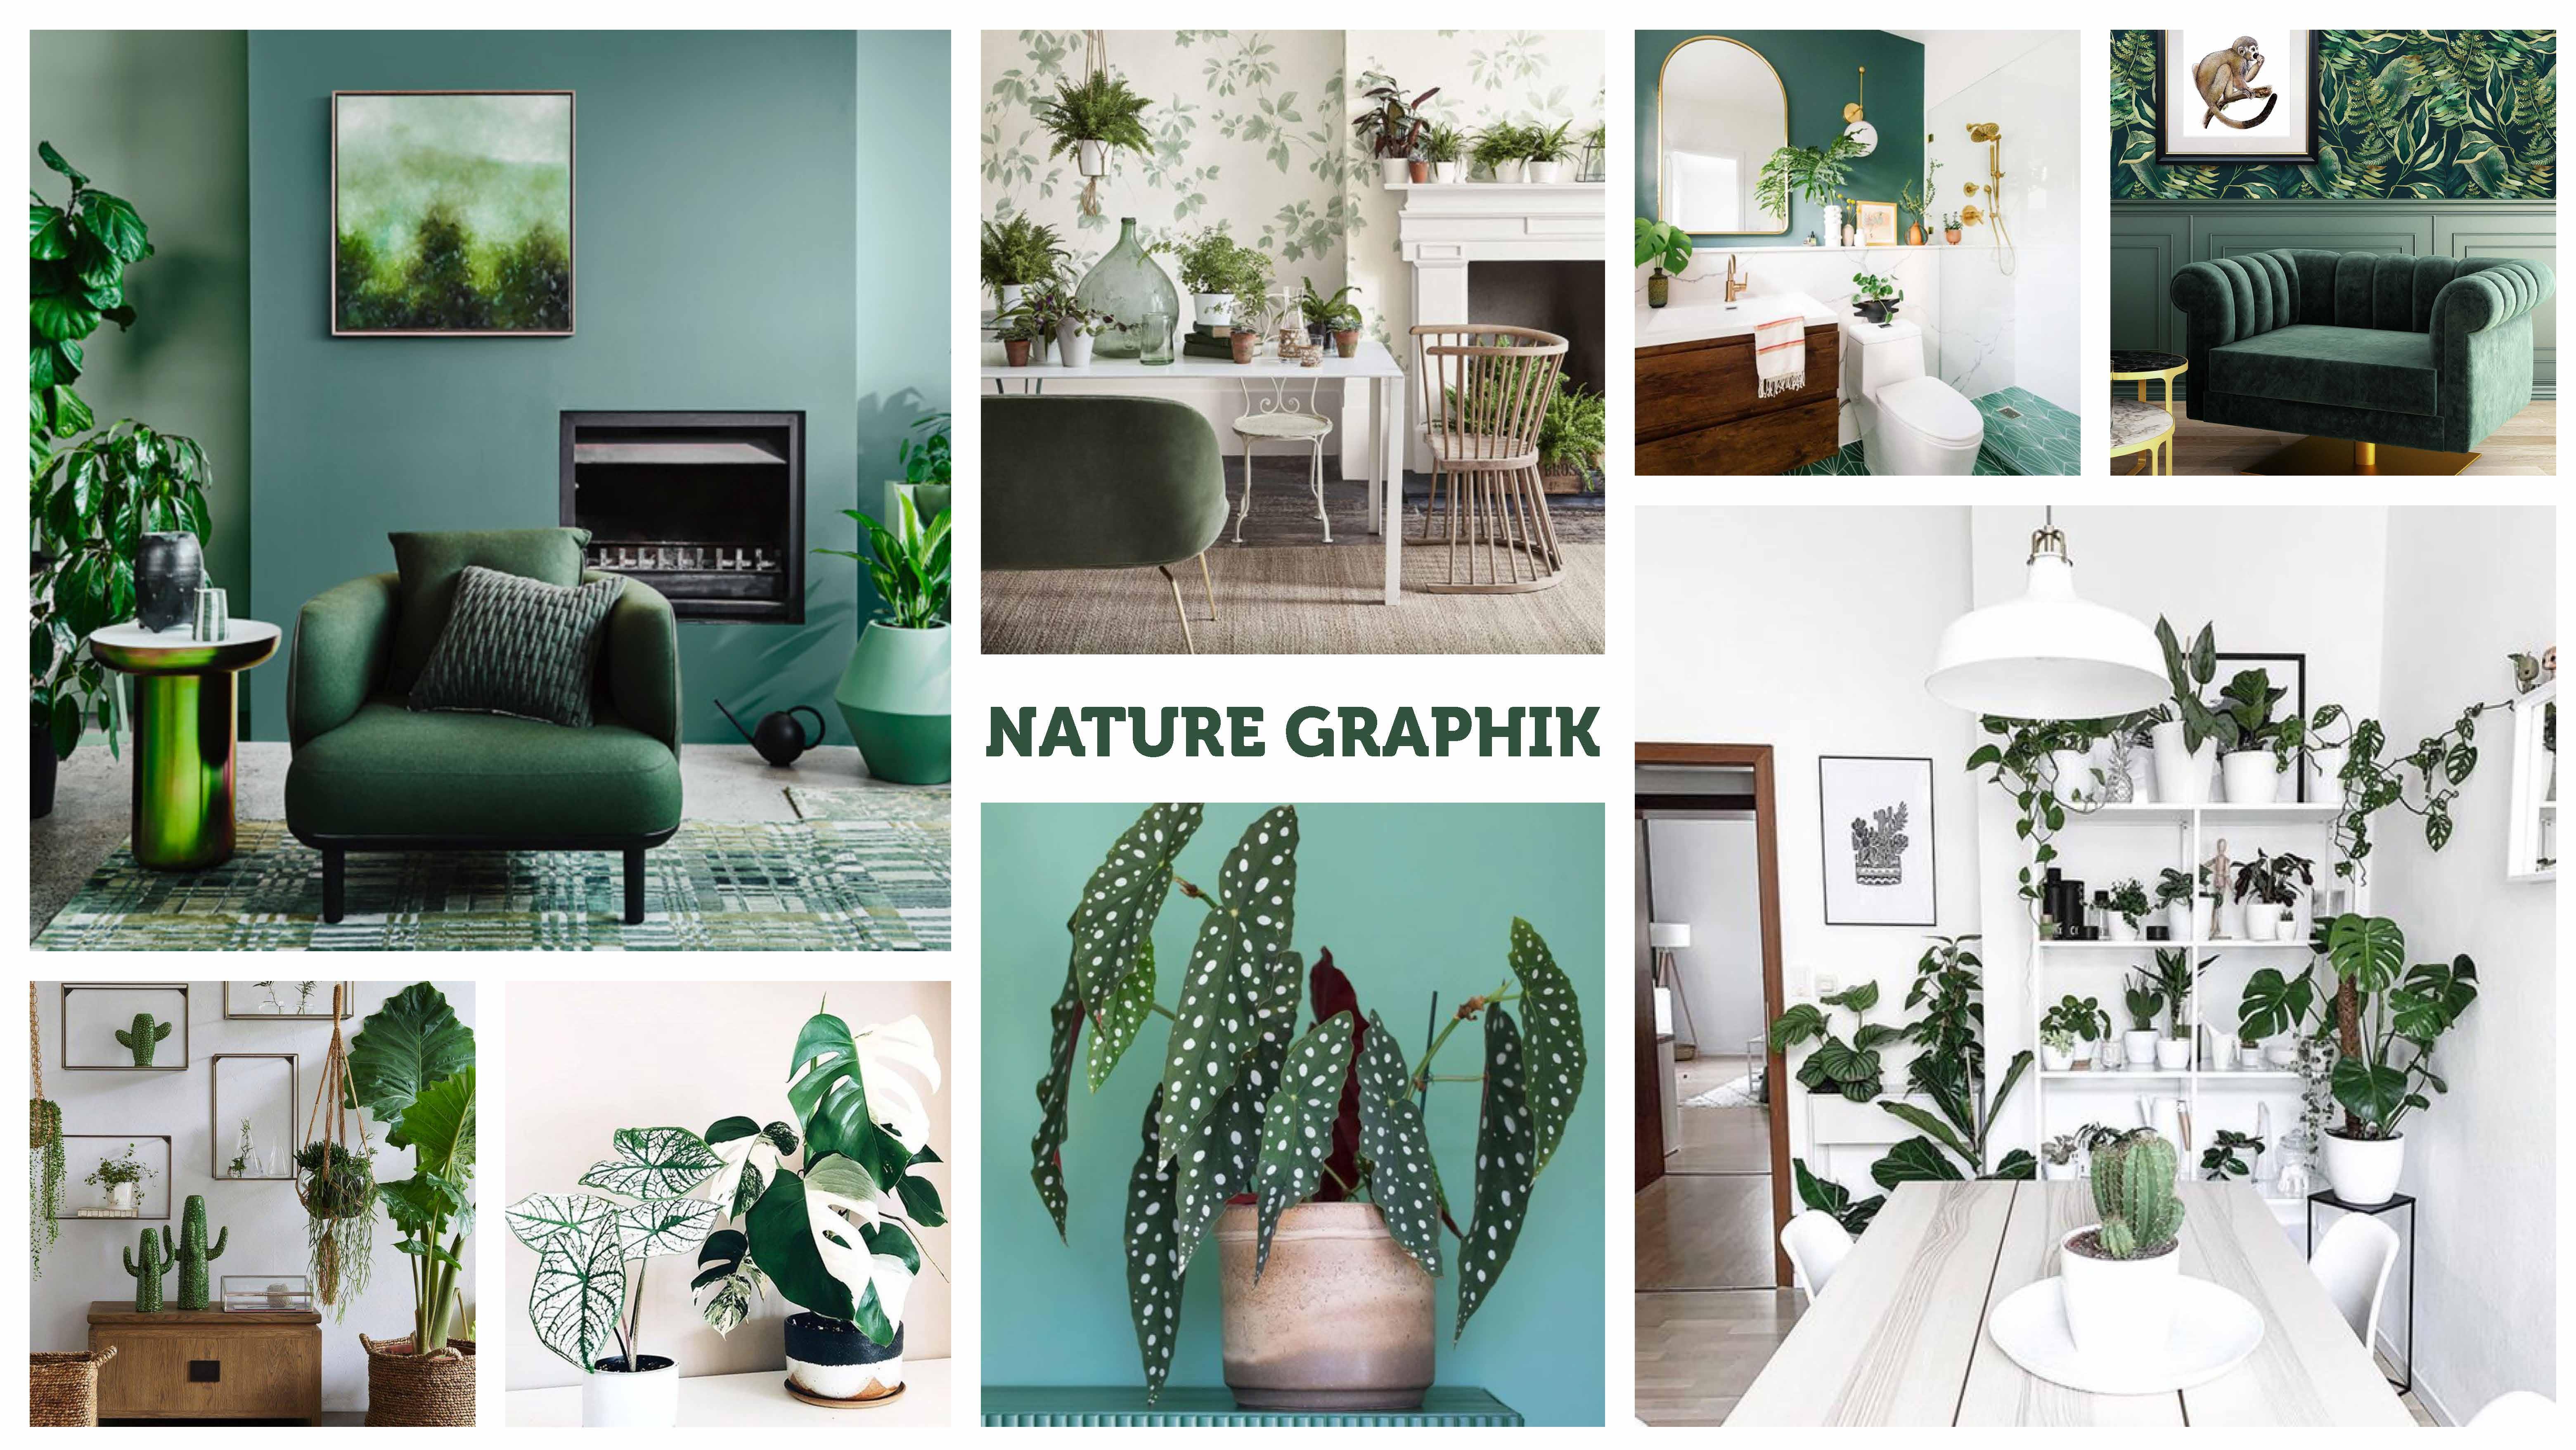 MOODBOARD-Nature Graphik